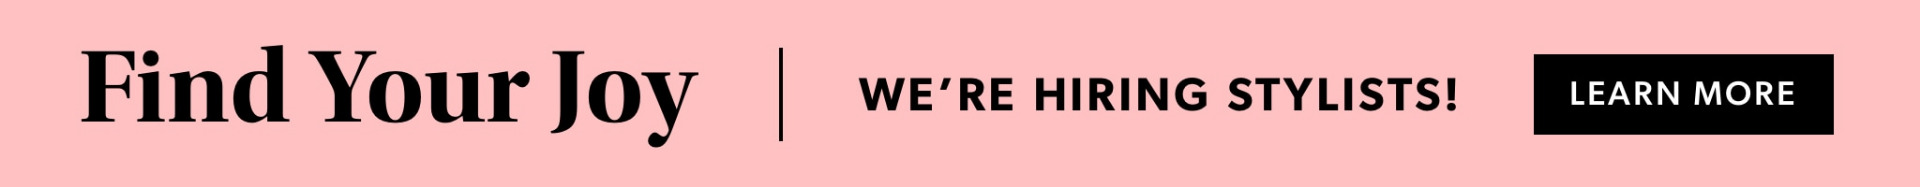 We're hiring stylists!  Learn more.